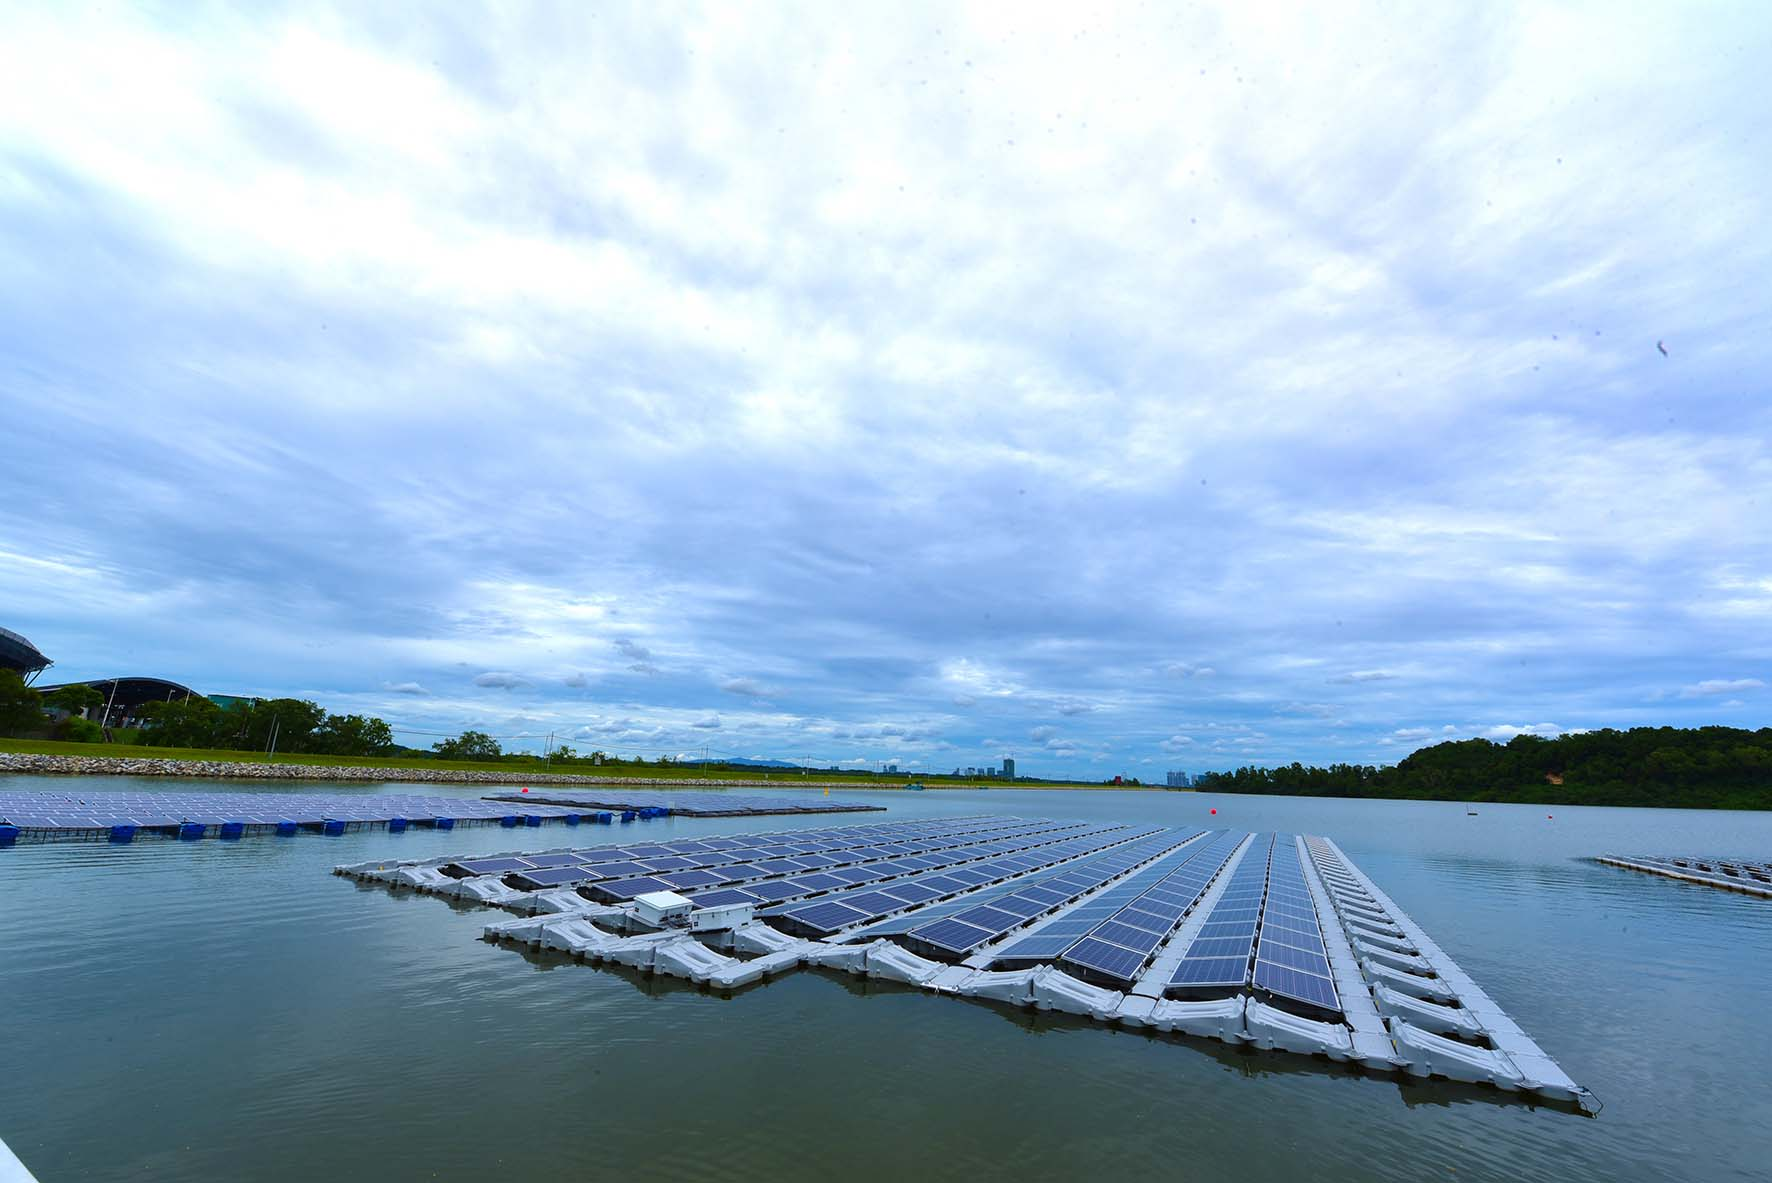 The one-hectare floating solar PV test bed on Tengeh Reservoir. Image: Solar Energy Research Institute of Singapore